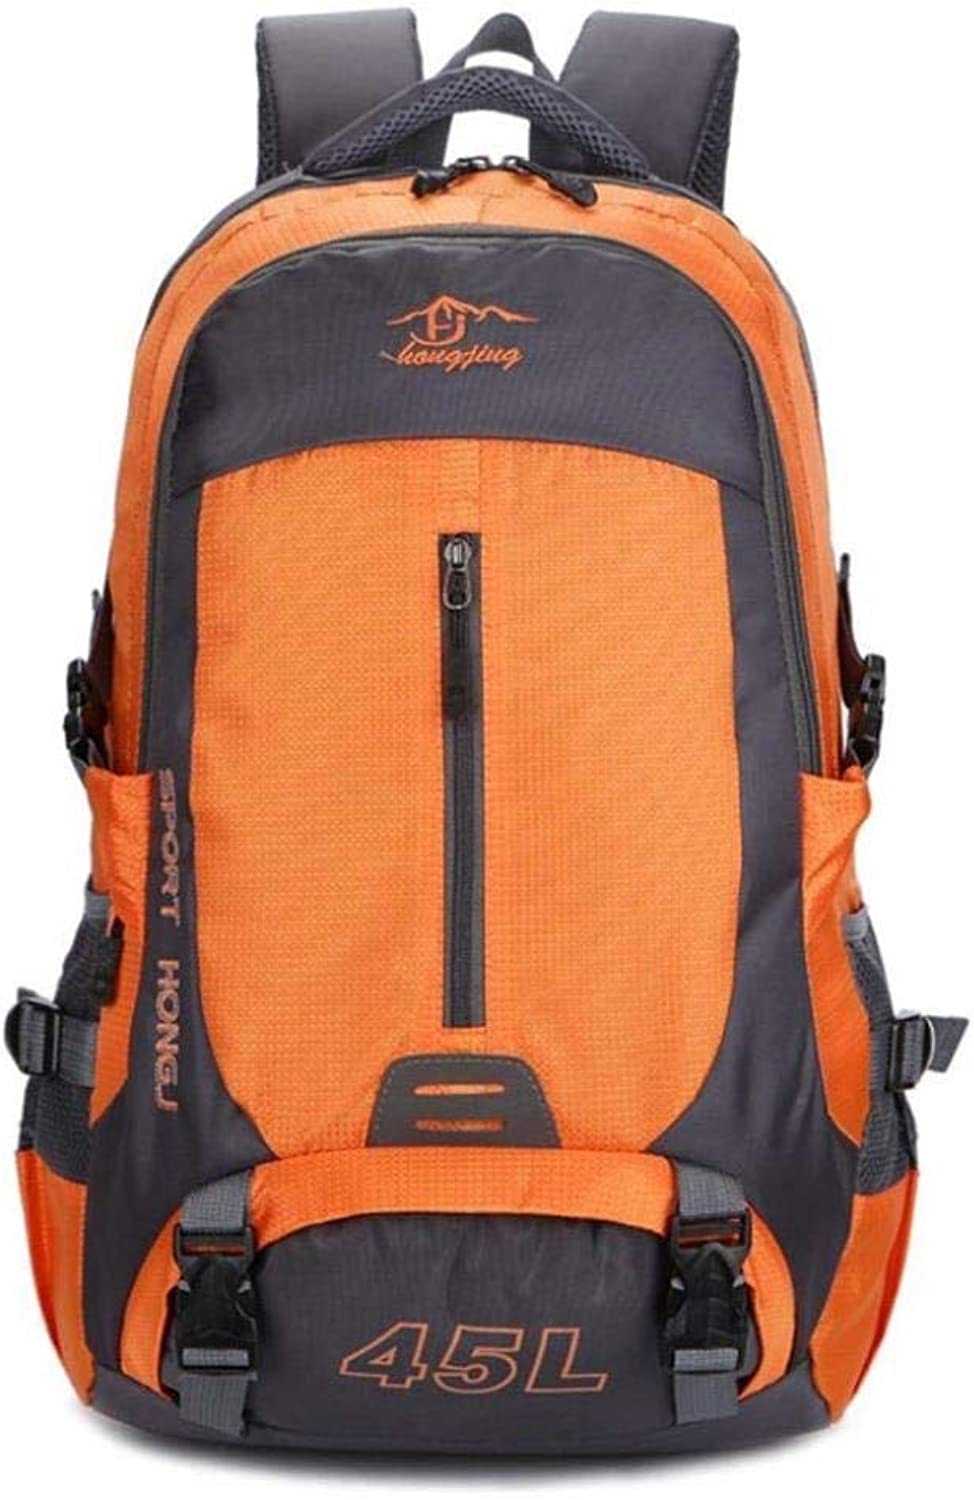 Lightweight Foldable Packable Durable Water Resistant Travel Hiking Backpacks Daypacks (color   D)